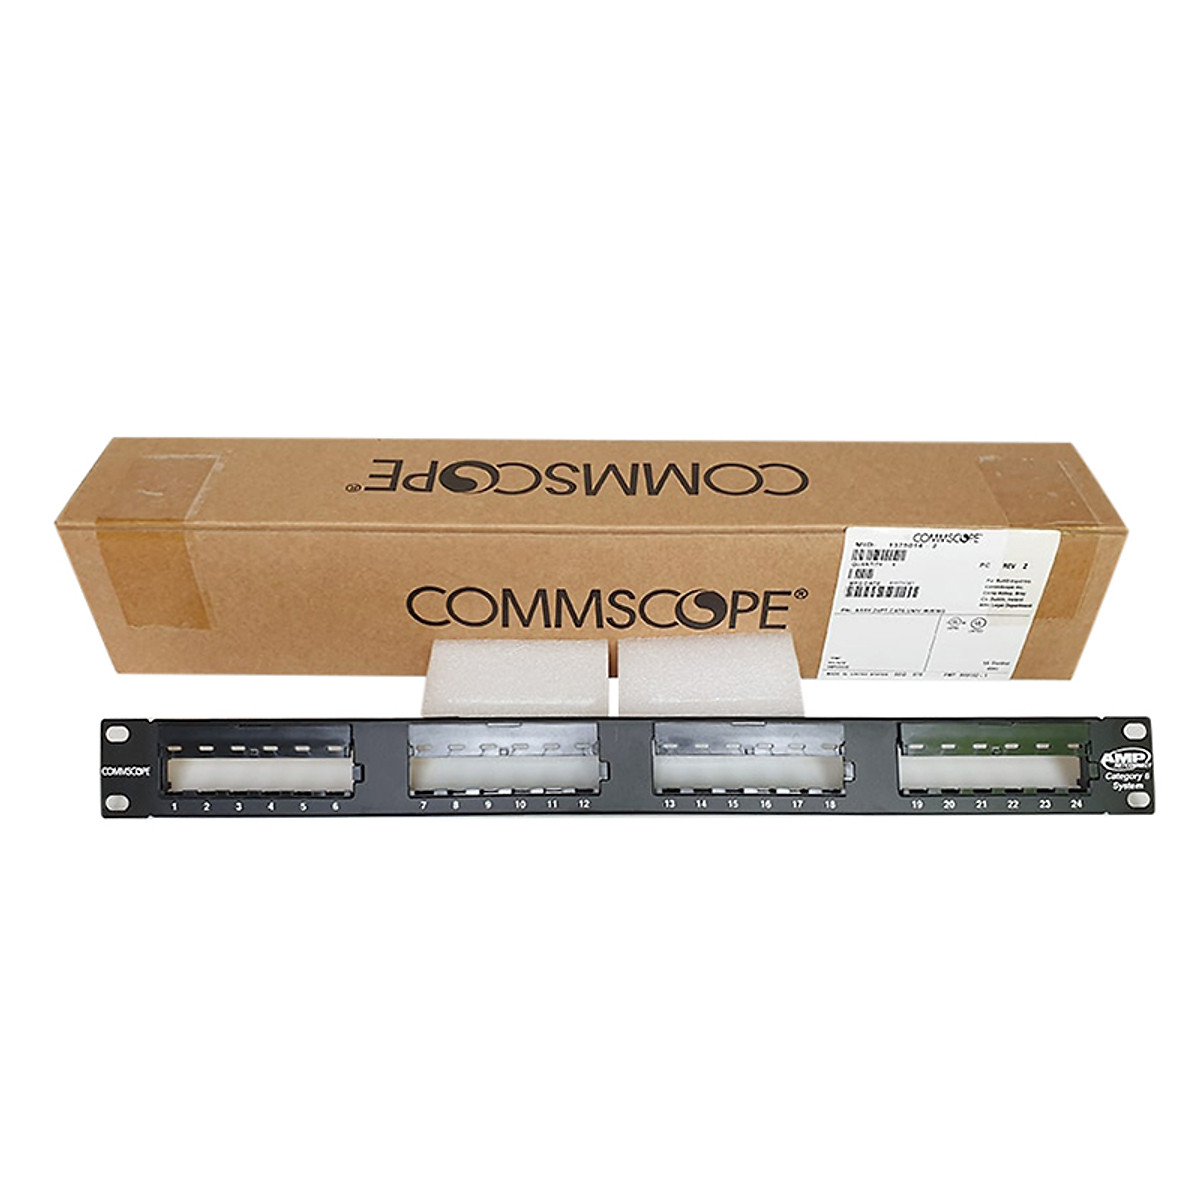 Patch panel 24 port cat5e